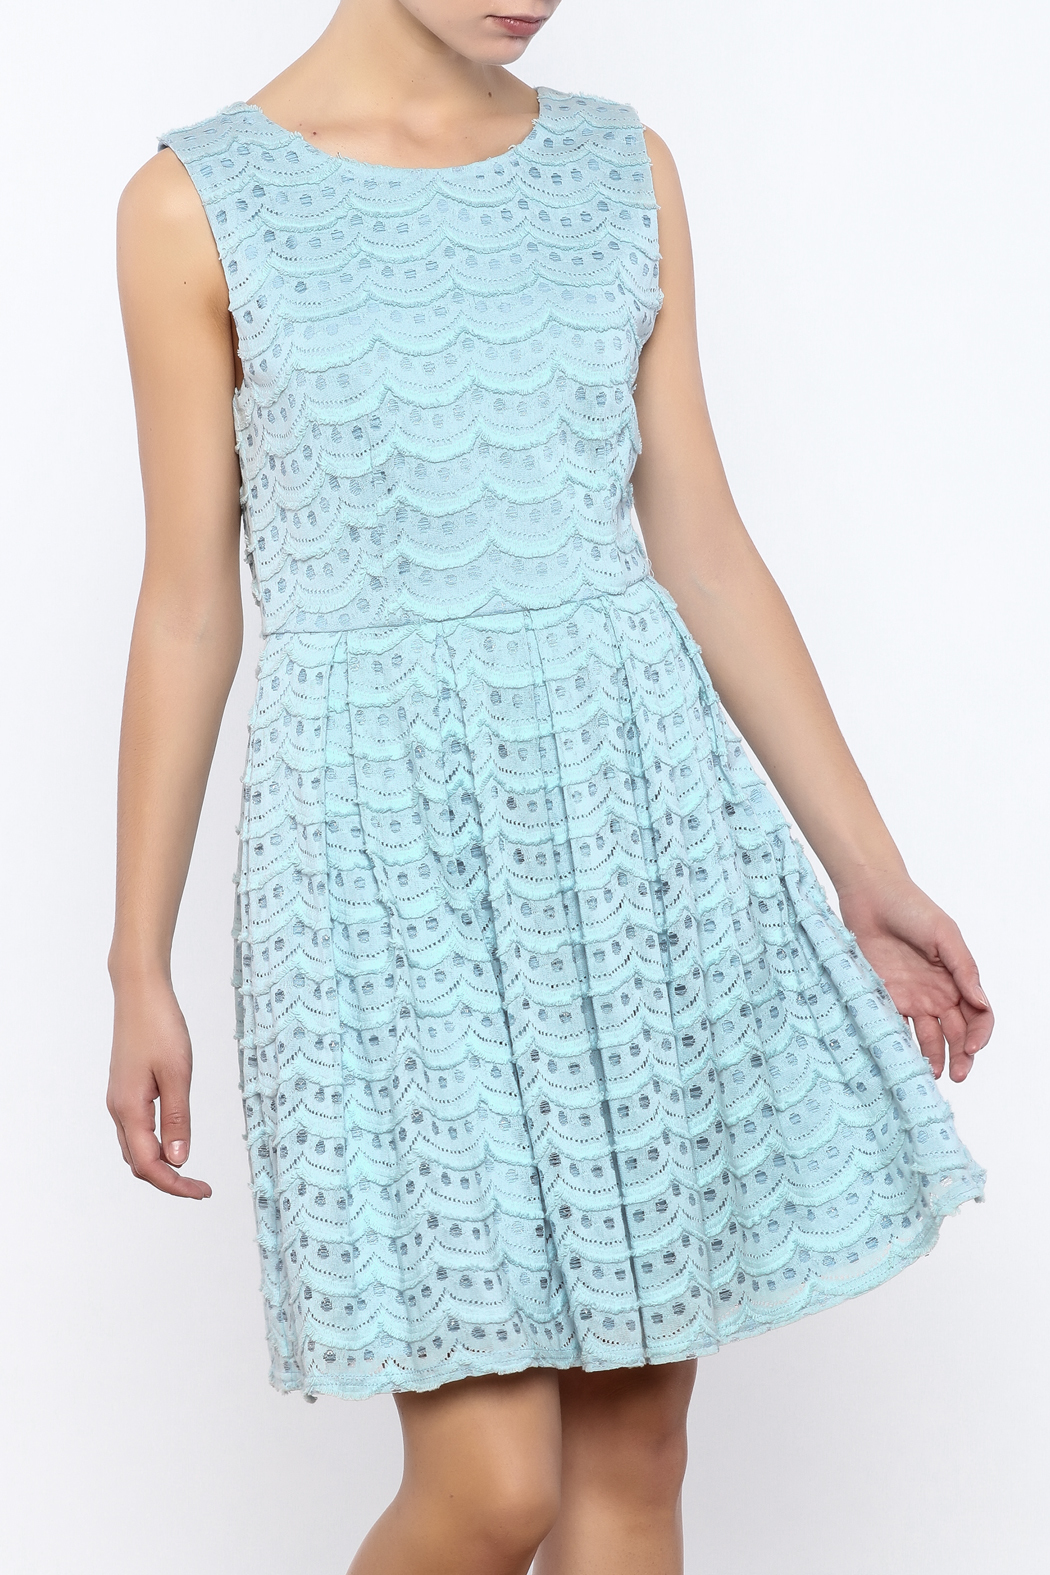 Bacio Pastel Dress - Main Image